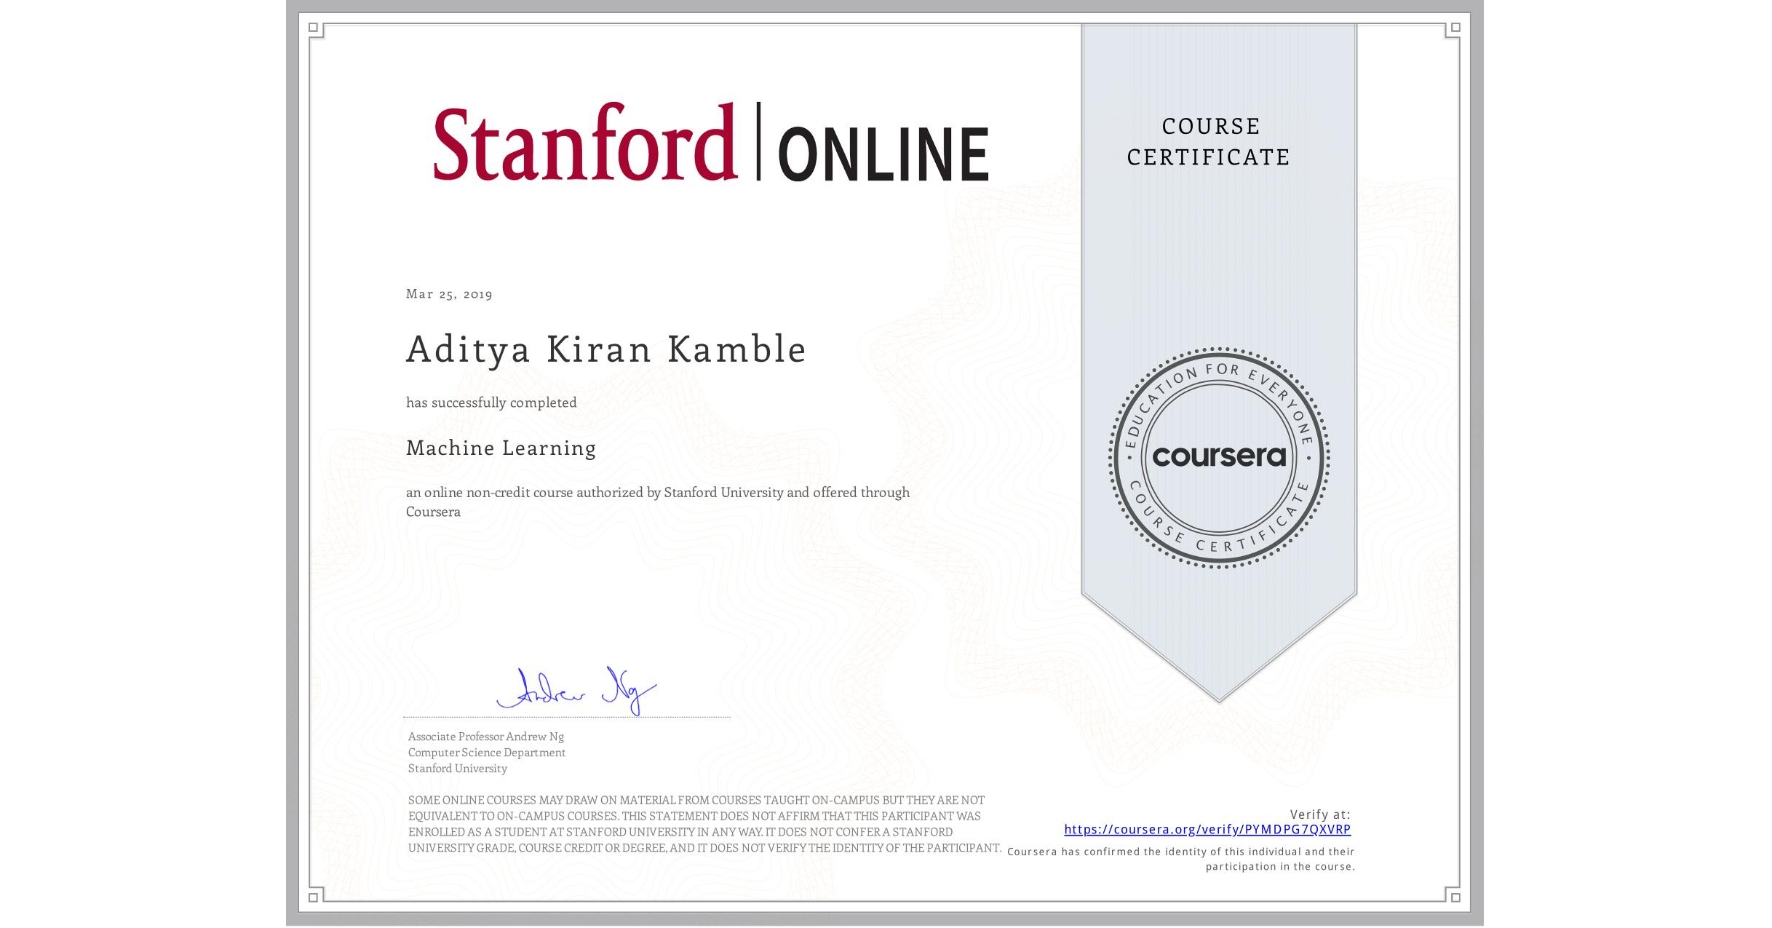 View certificate for Aditya Kiran Kamble, Machine Learning, an online non-credit course authorized by Stanford University and offered through Coursera